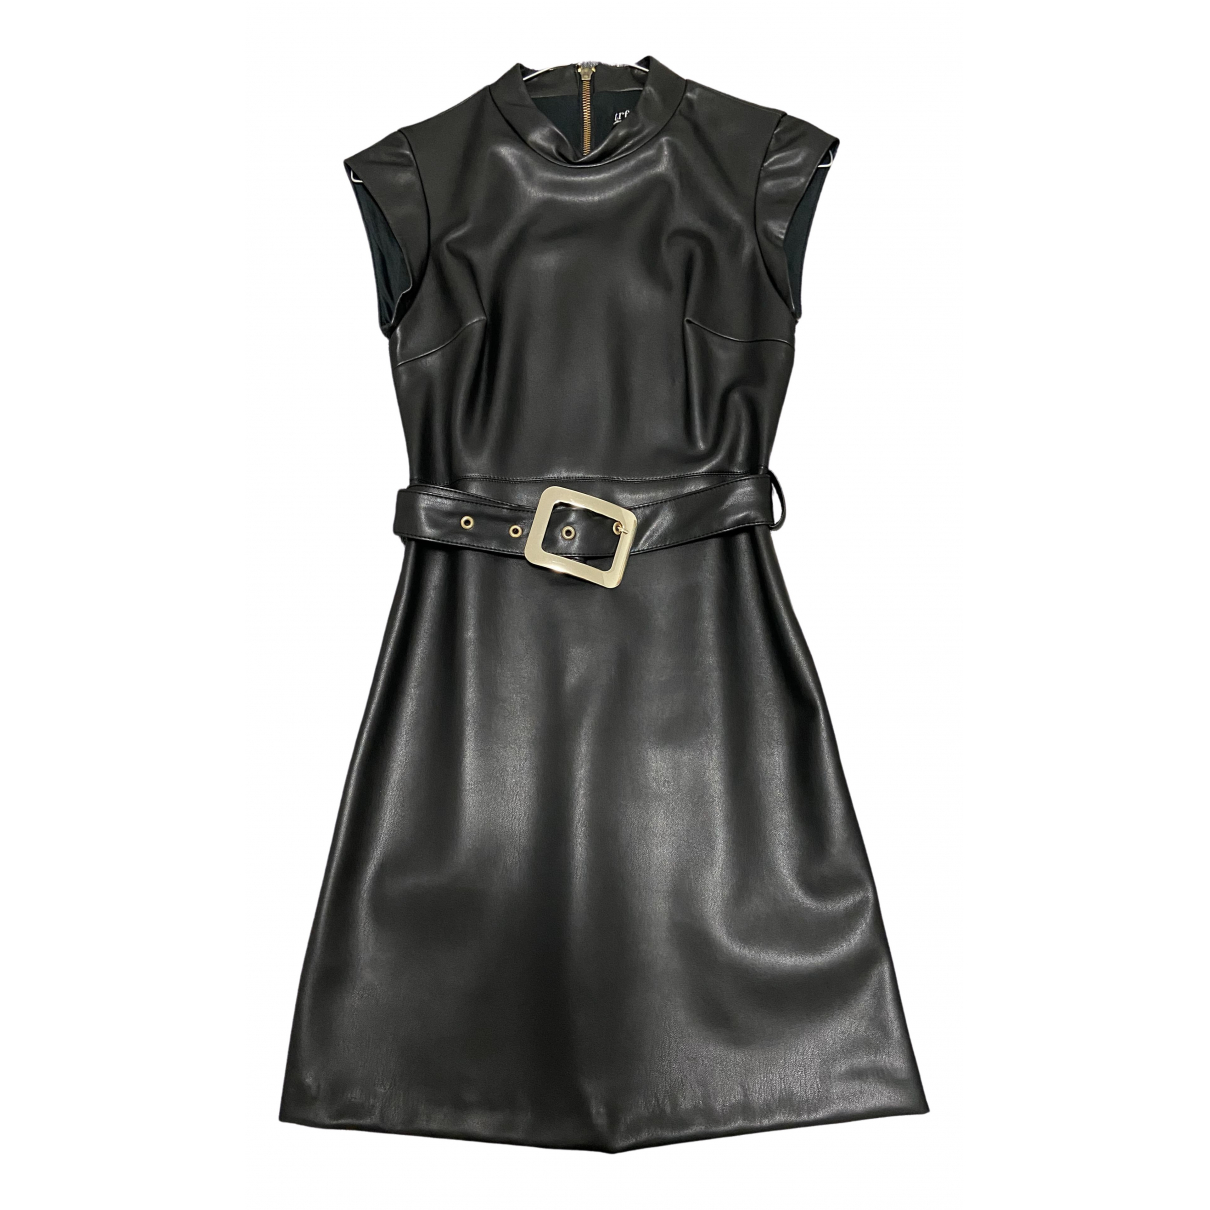 Zara \N Black Leather dress for Women XS International